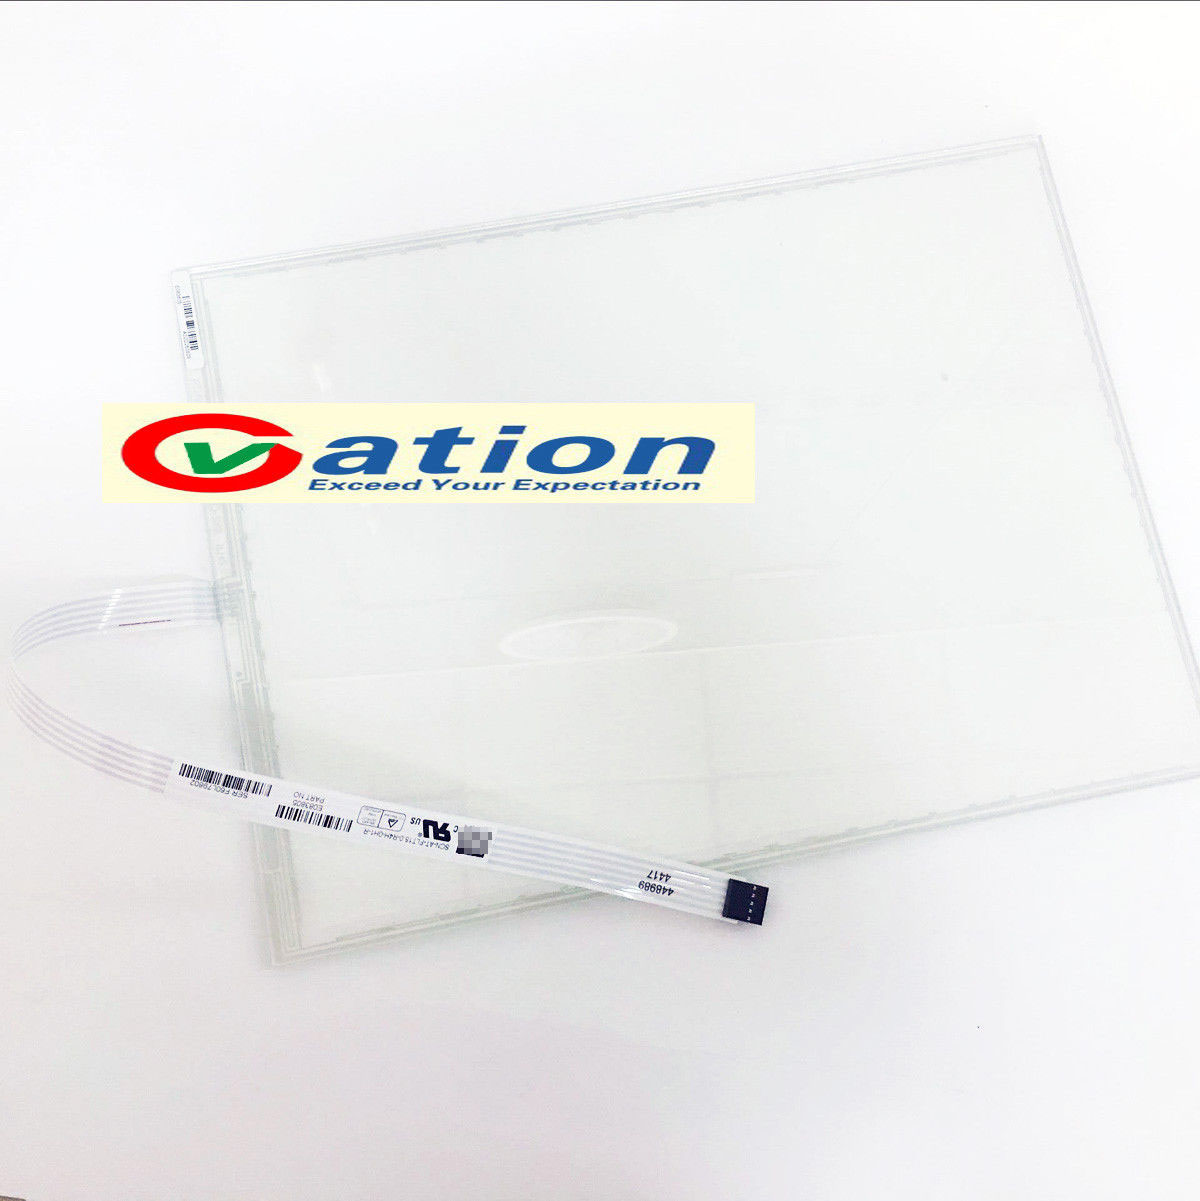 For SCN-A5-FLT10.4-Z08-0H1-R E588459 Touch Screen Glass Panel original new elo scn a5 flt10 4 z08 0h1 r e588459 touch screen